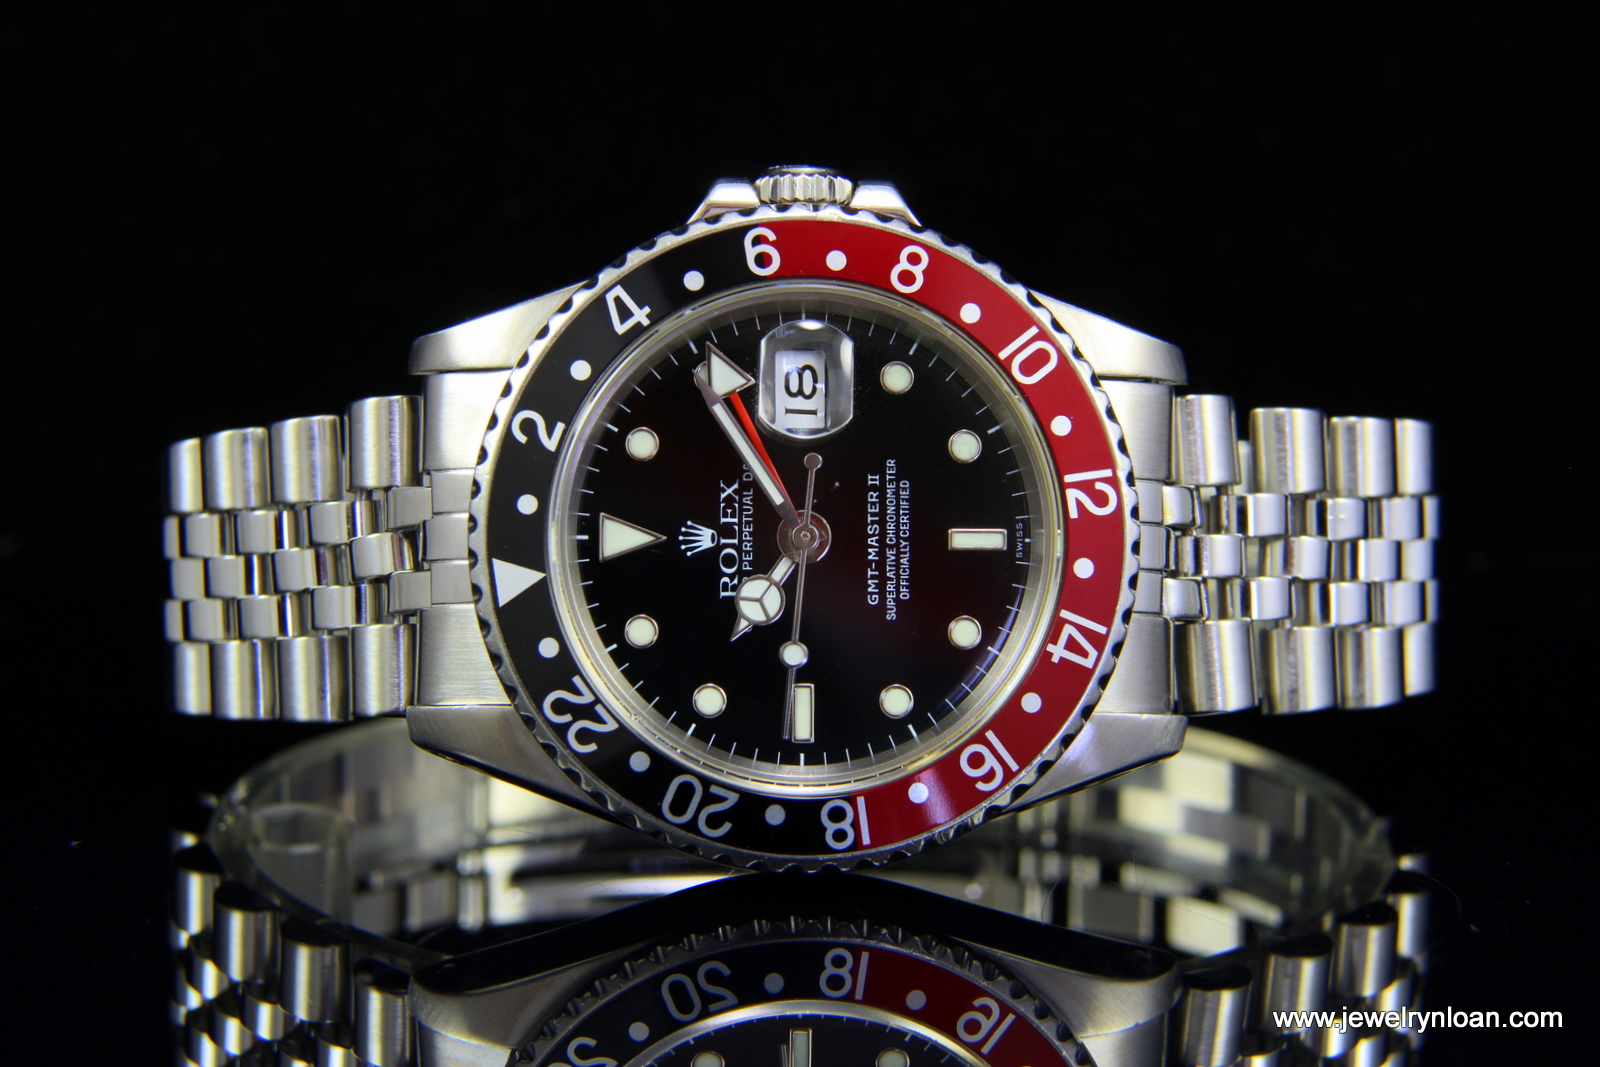 Sell Rolex Watches For The Best Price